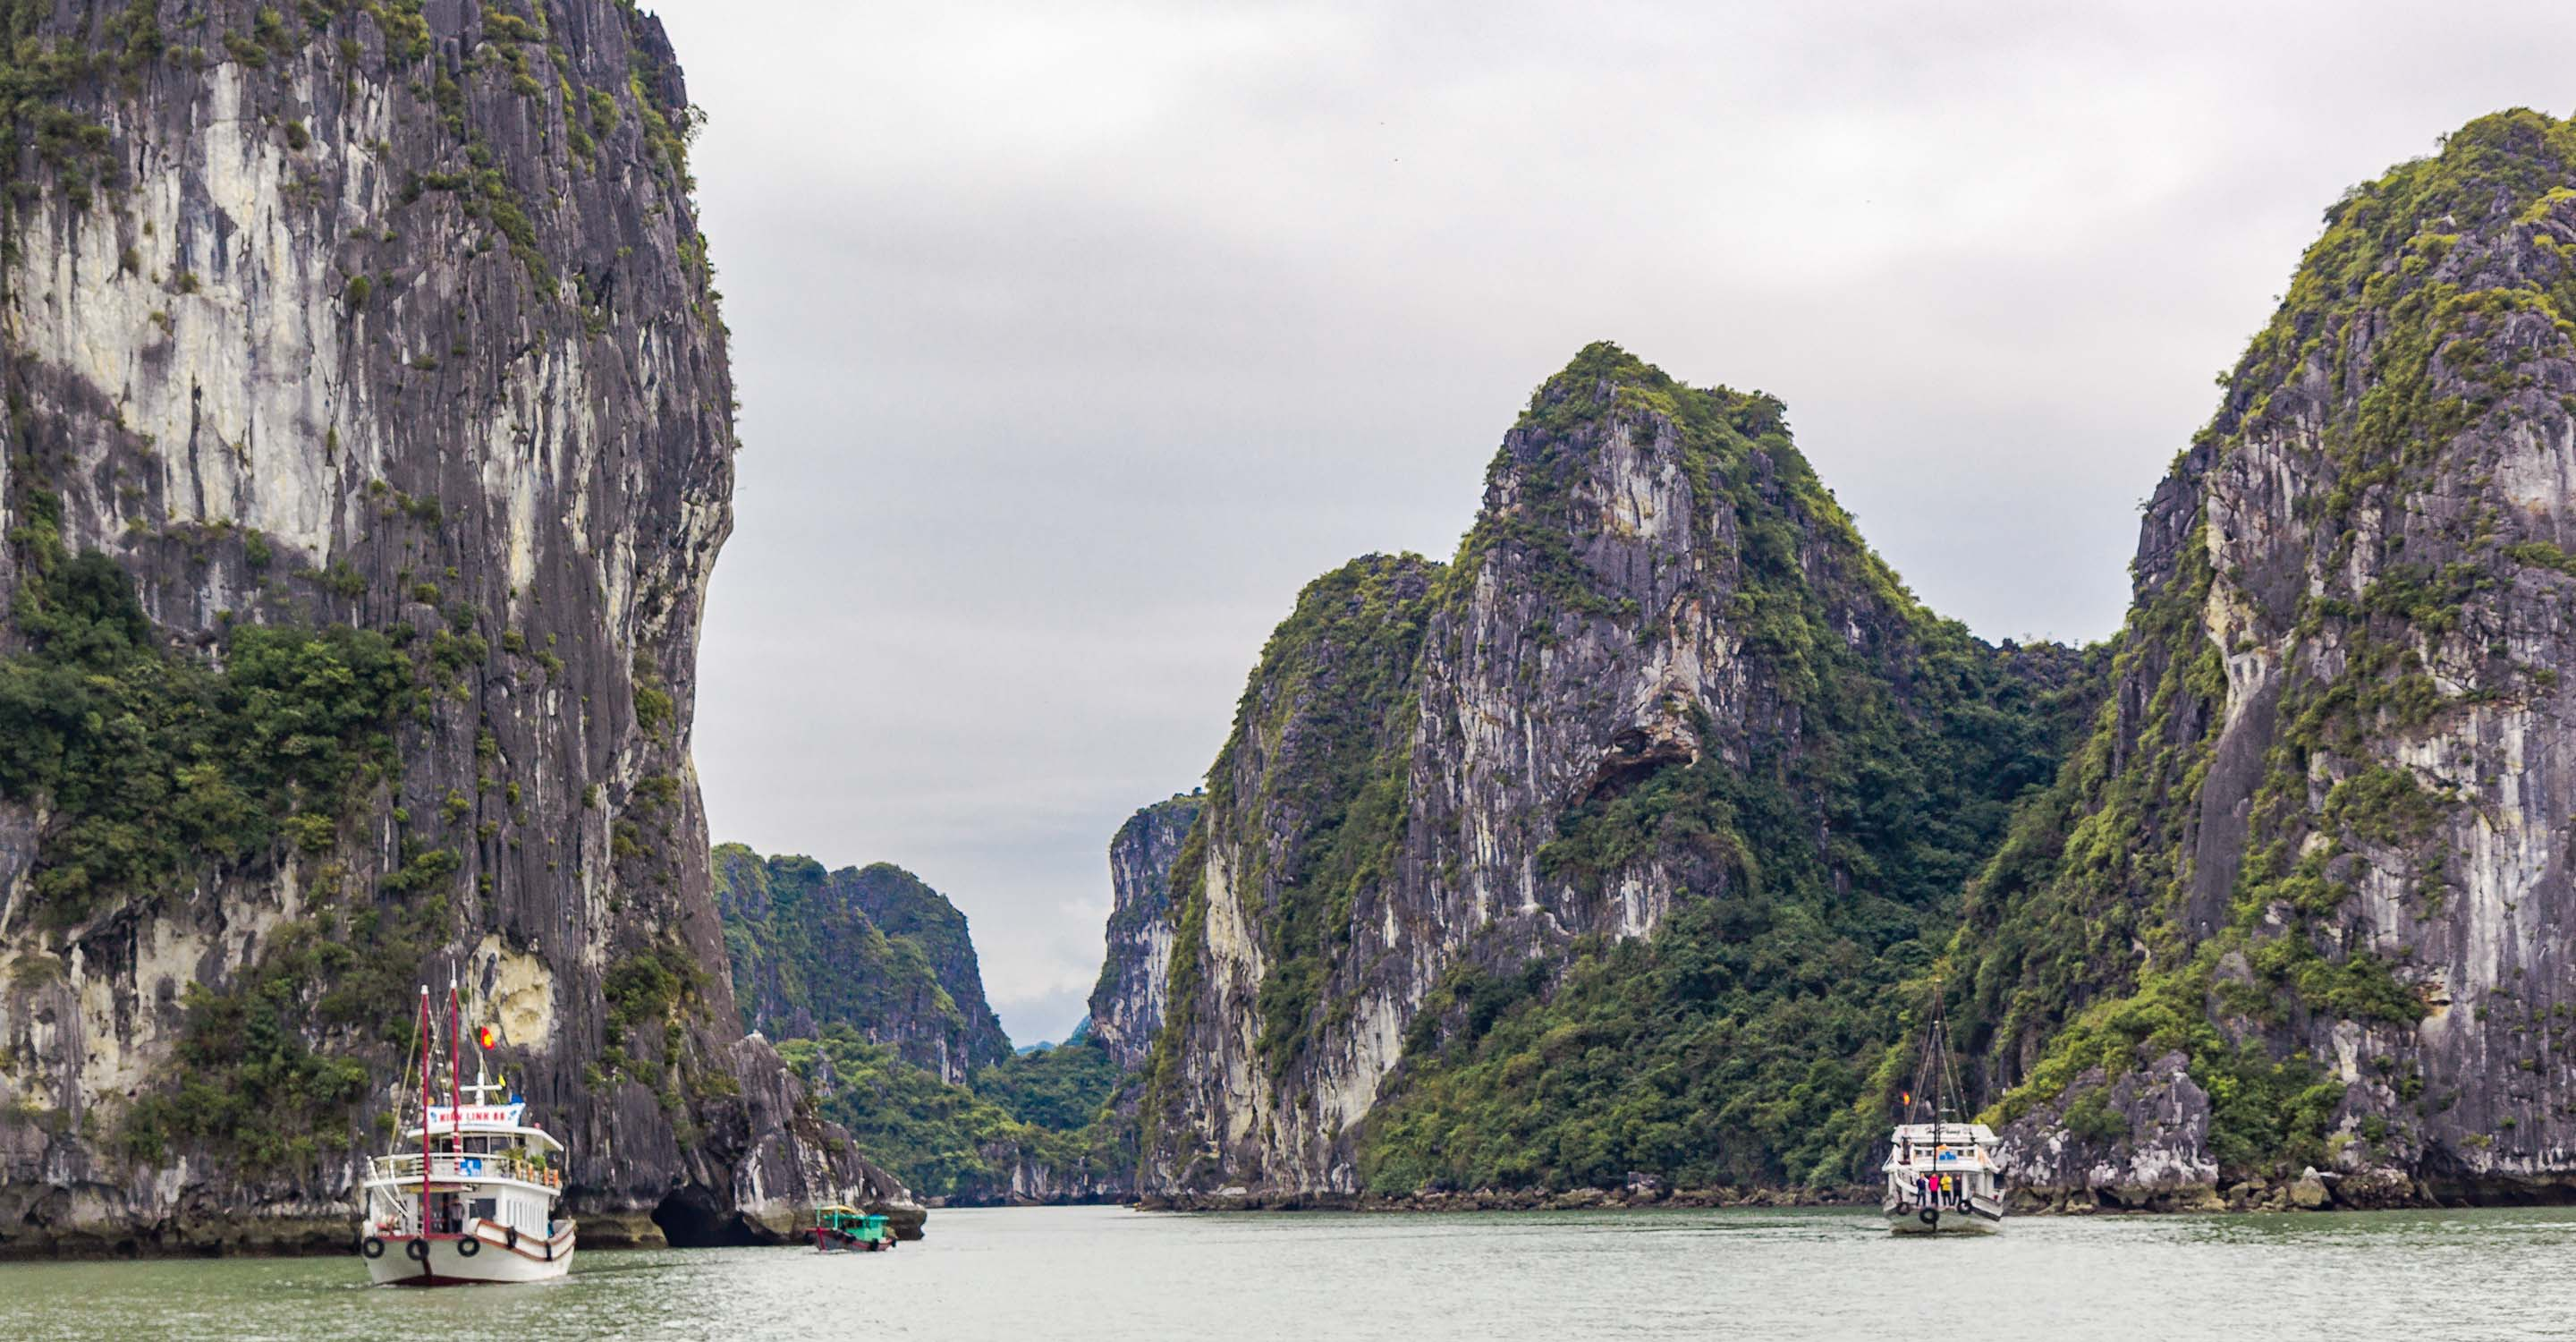 Choosing a Ha Long Bay tour - why is it so hard?